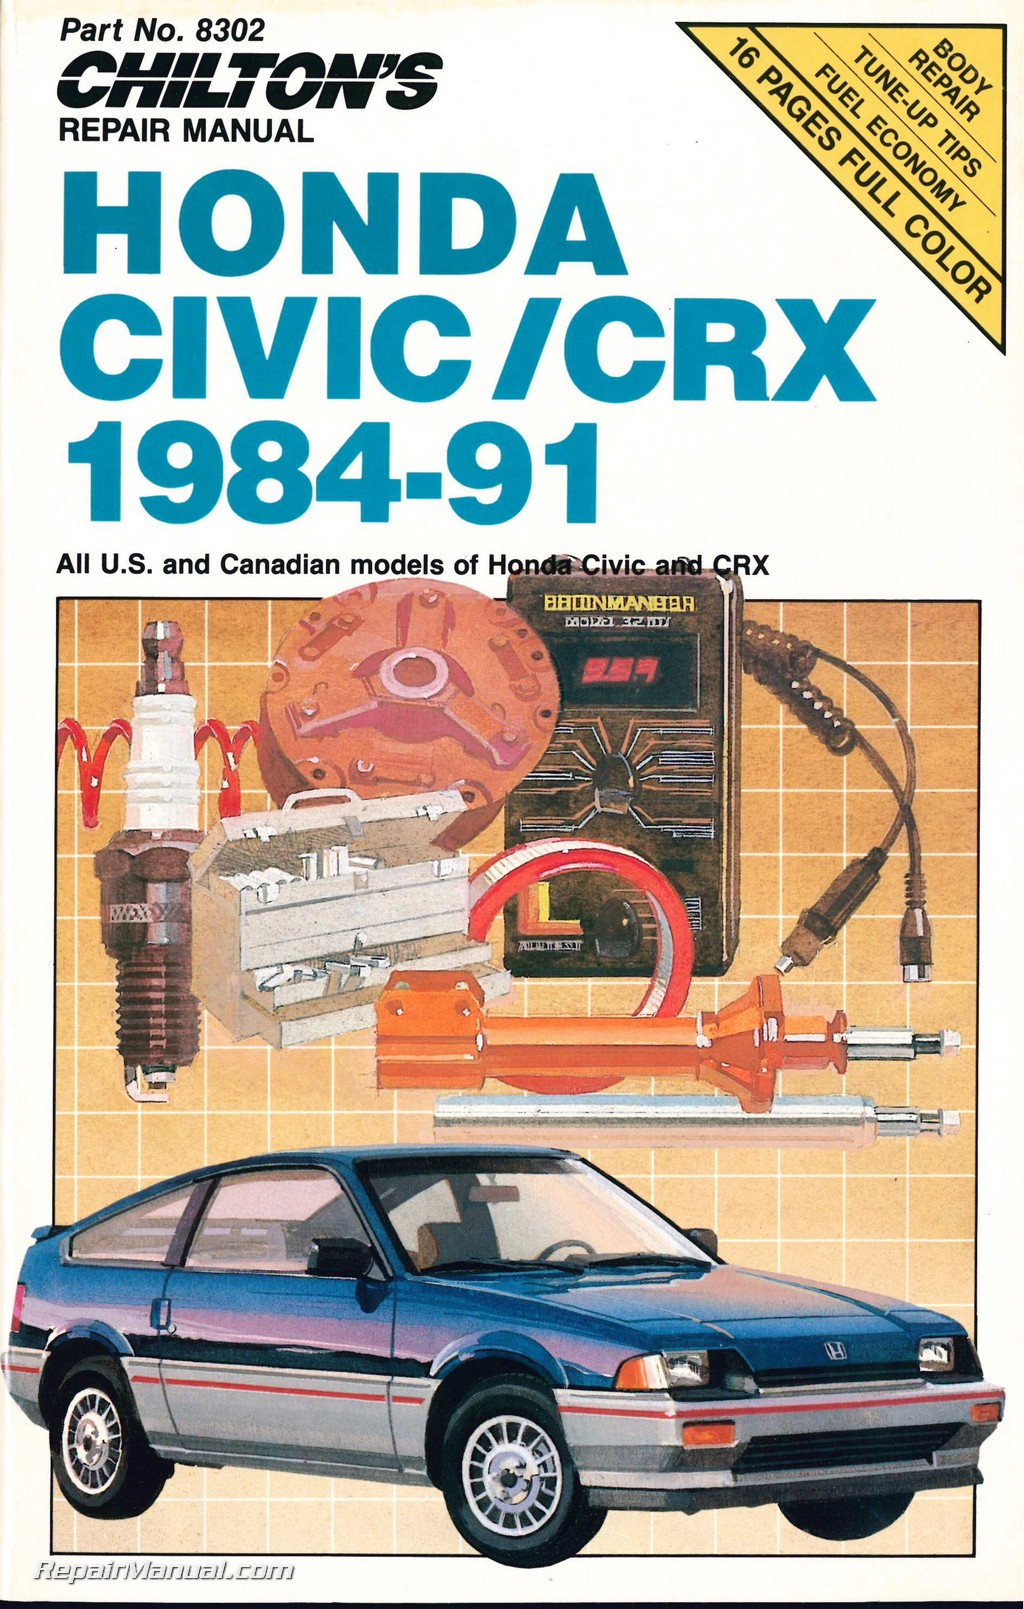 Hqdefault additionally Maxresdefault likewise Large additionally Chilton Honda Civic Crx Repair Manual together with Barn Finds Honda Crx. on 1989 honda crx